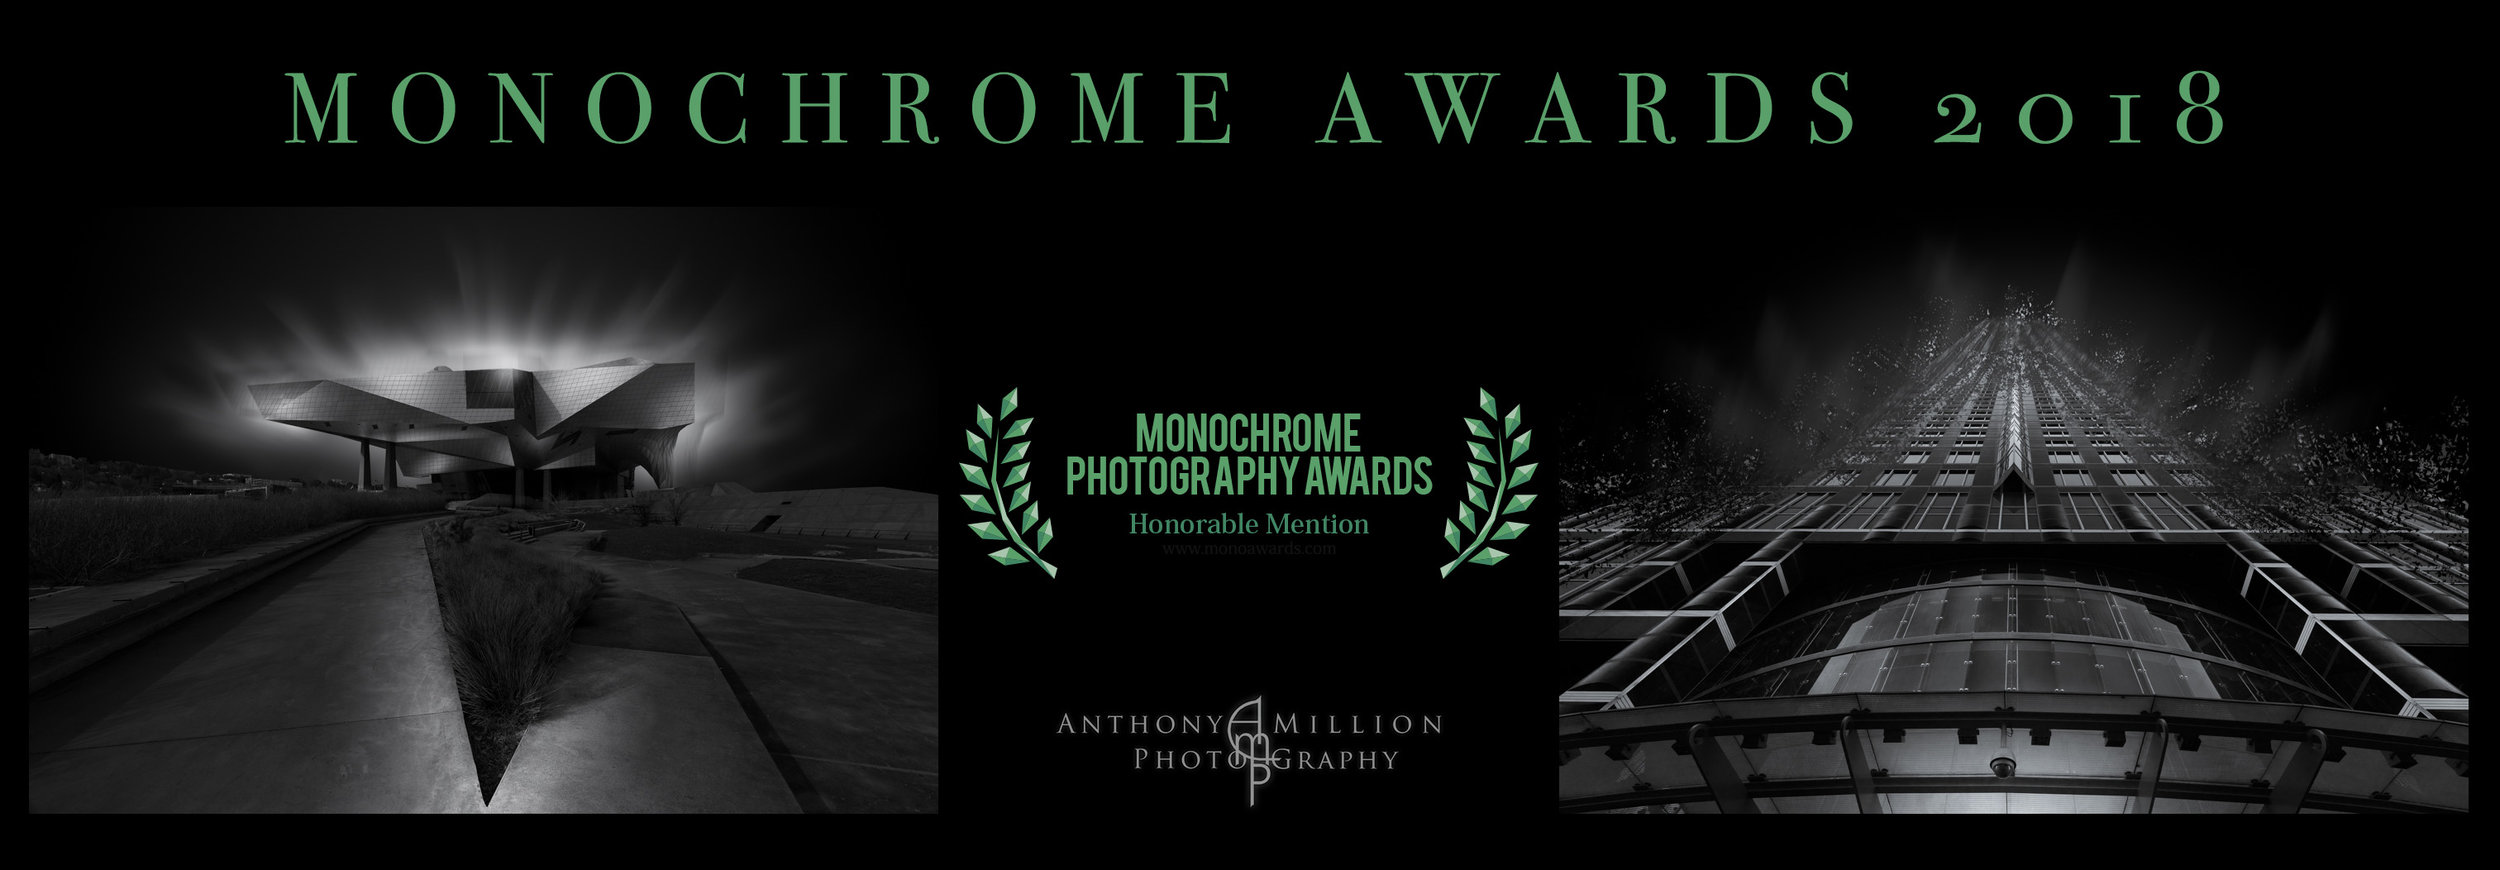 Monochrome Awards 2018.jpg